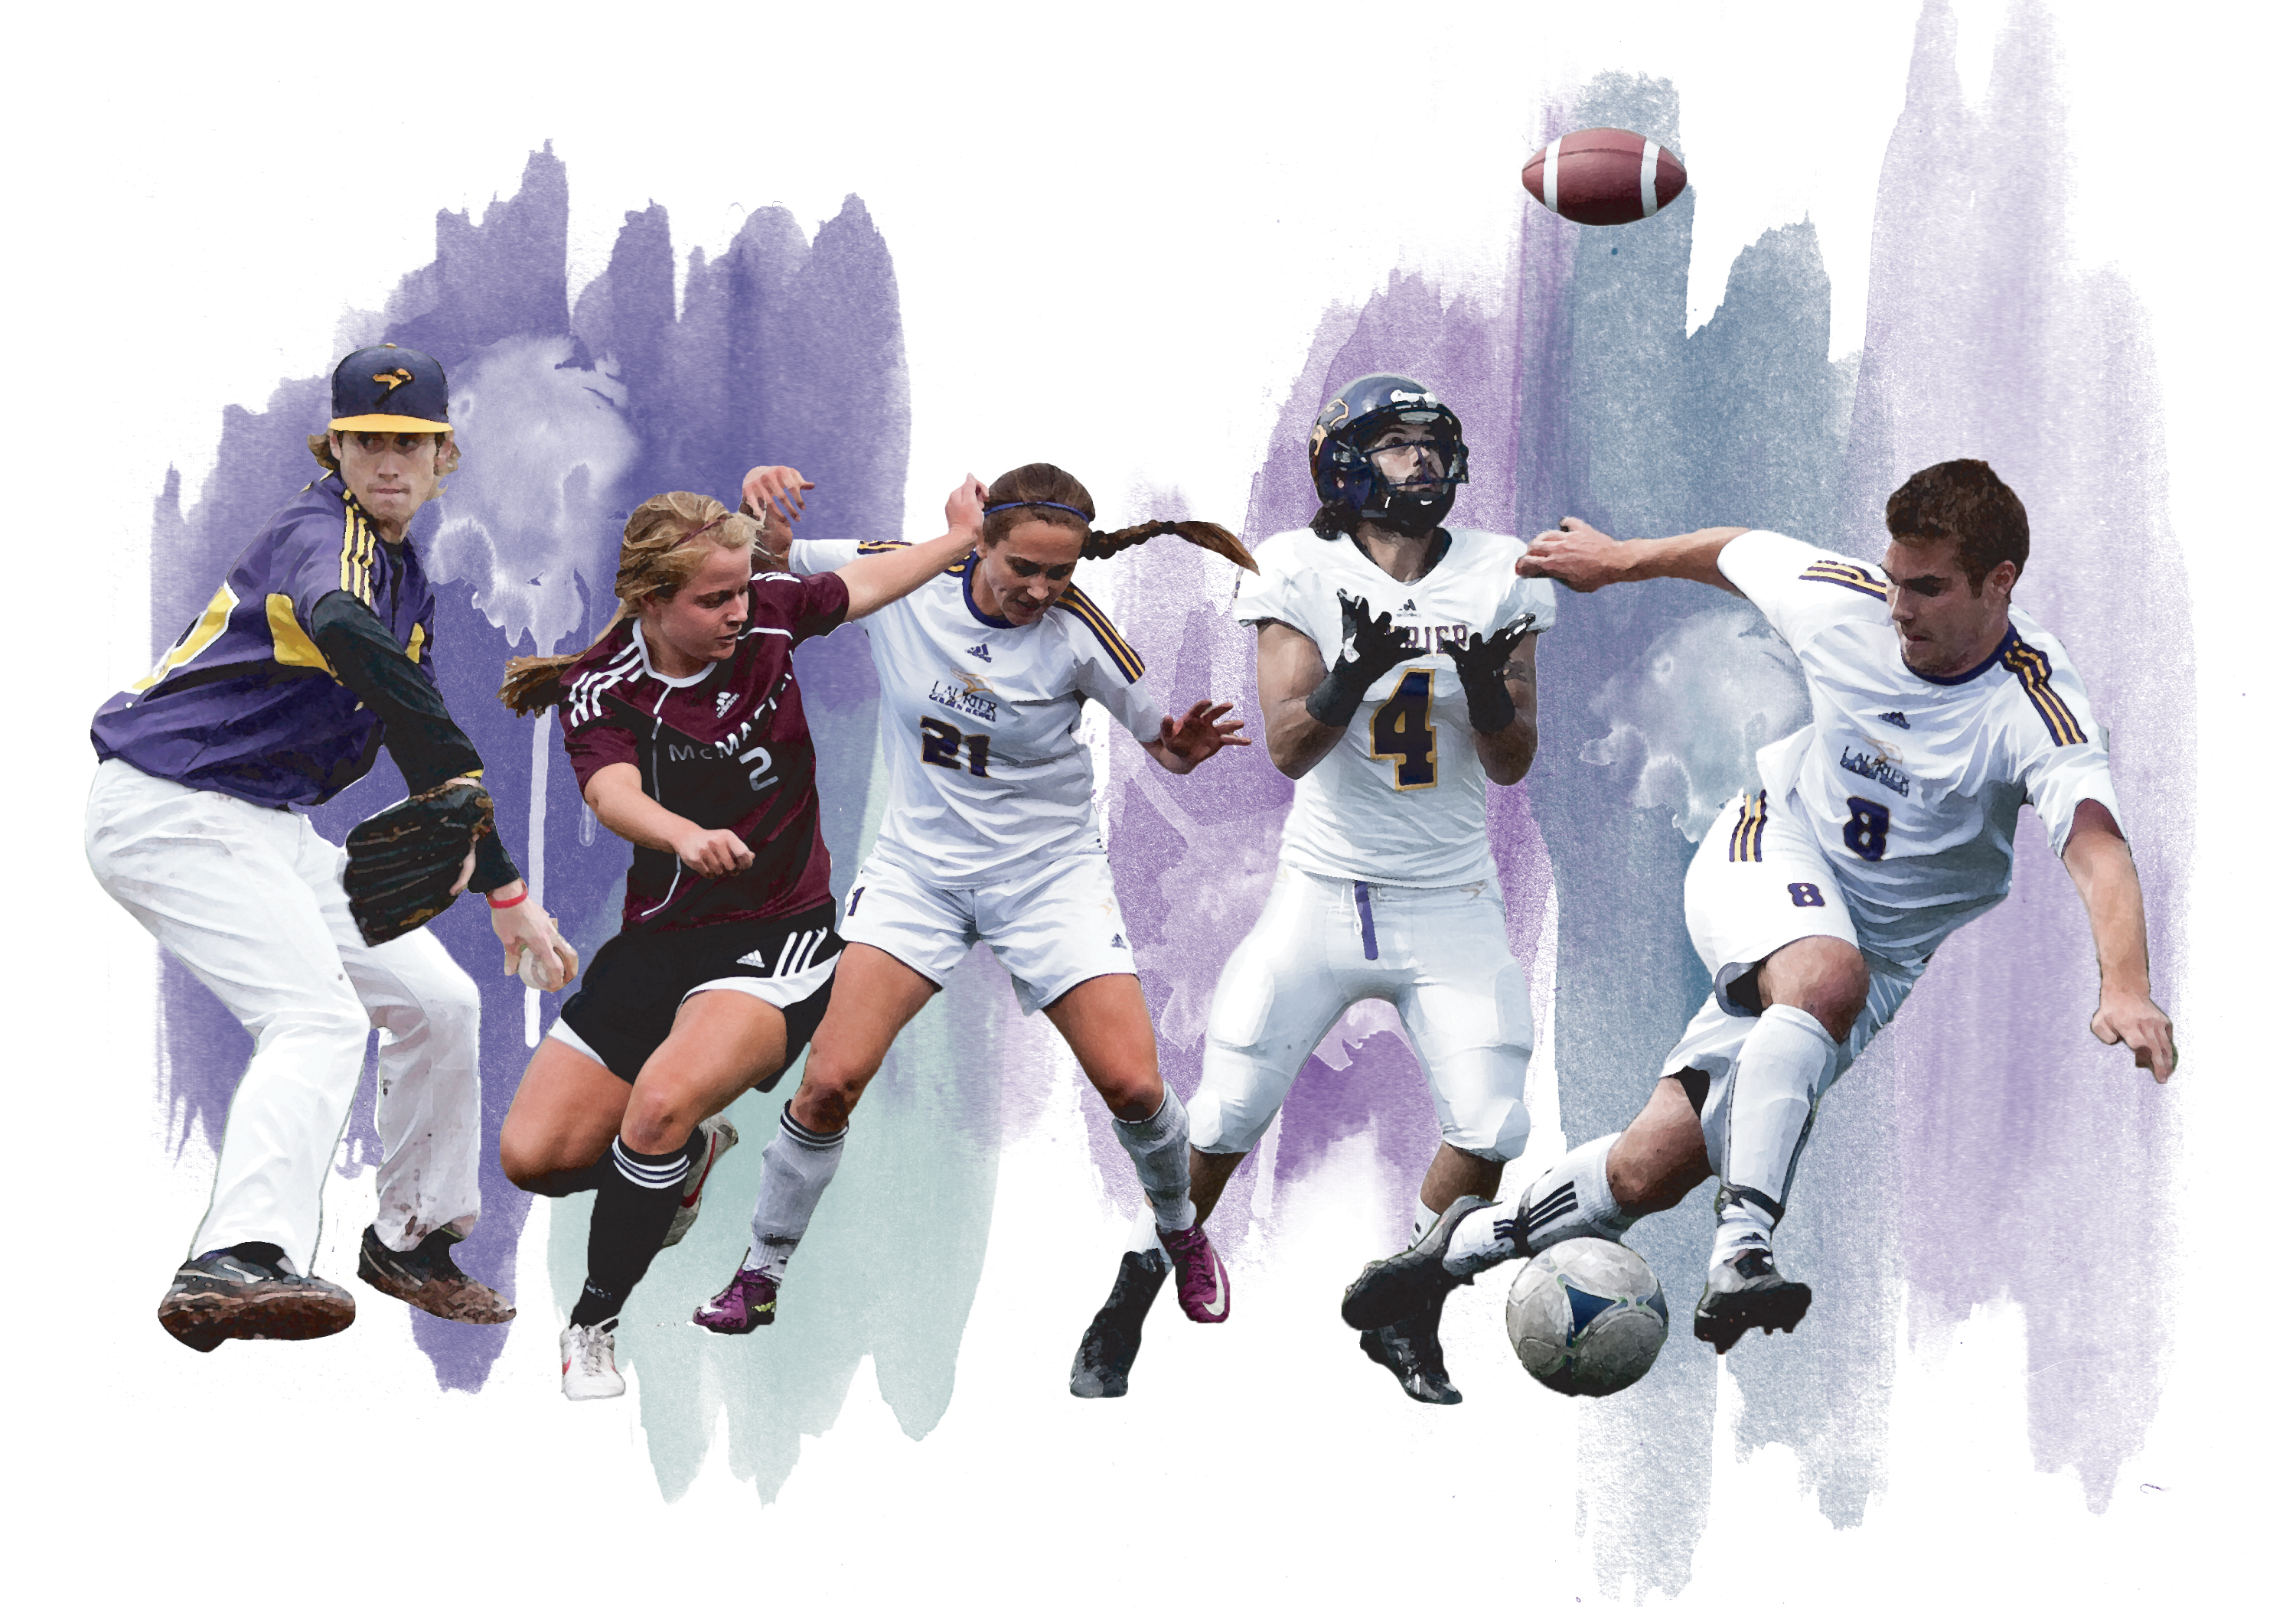 The Hawks start their fall campaign this upcoming week. (Photos by Megan Cherniak, Heather Davidson and Jody Waardenburg; Photo manipulation by Kate Turner)